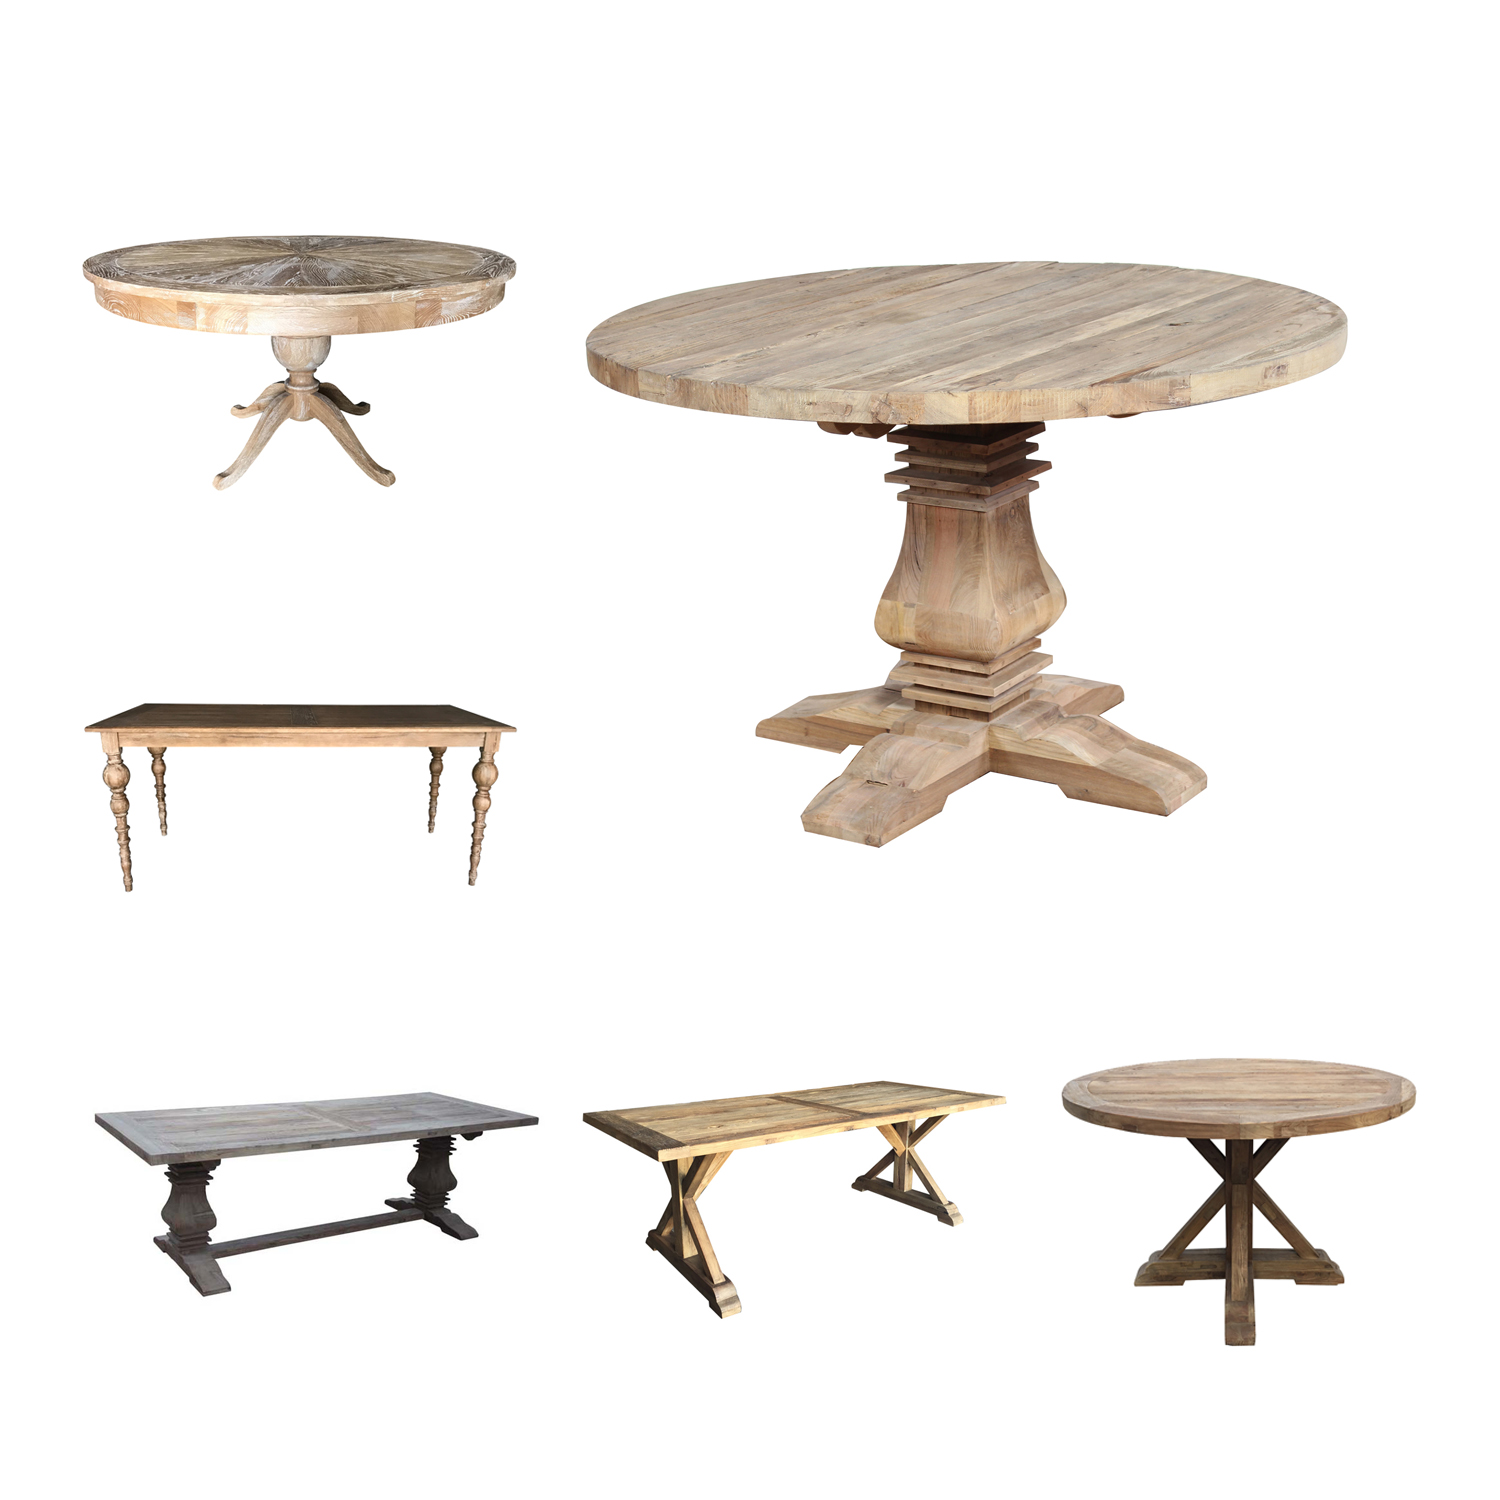 Reclaimed elm salvaged wood trestle round dining <strong>table</strong>